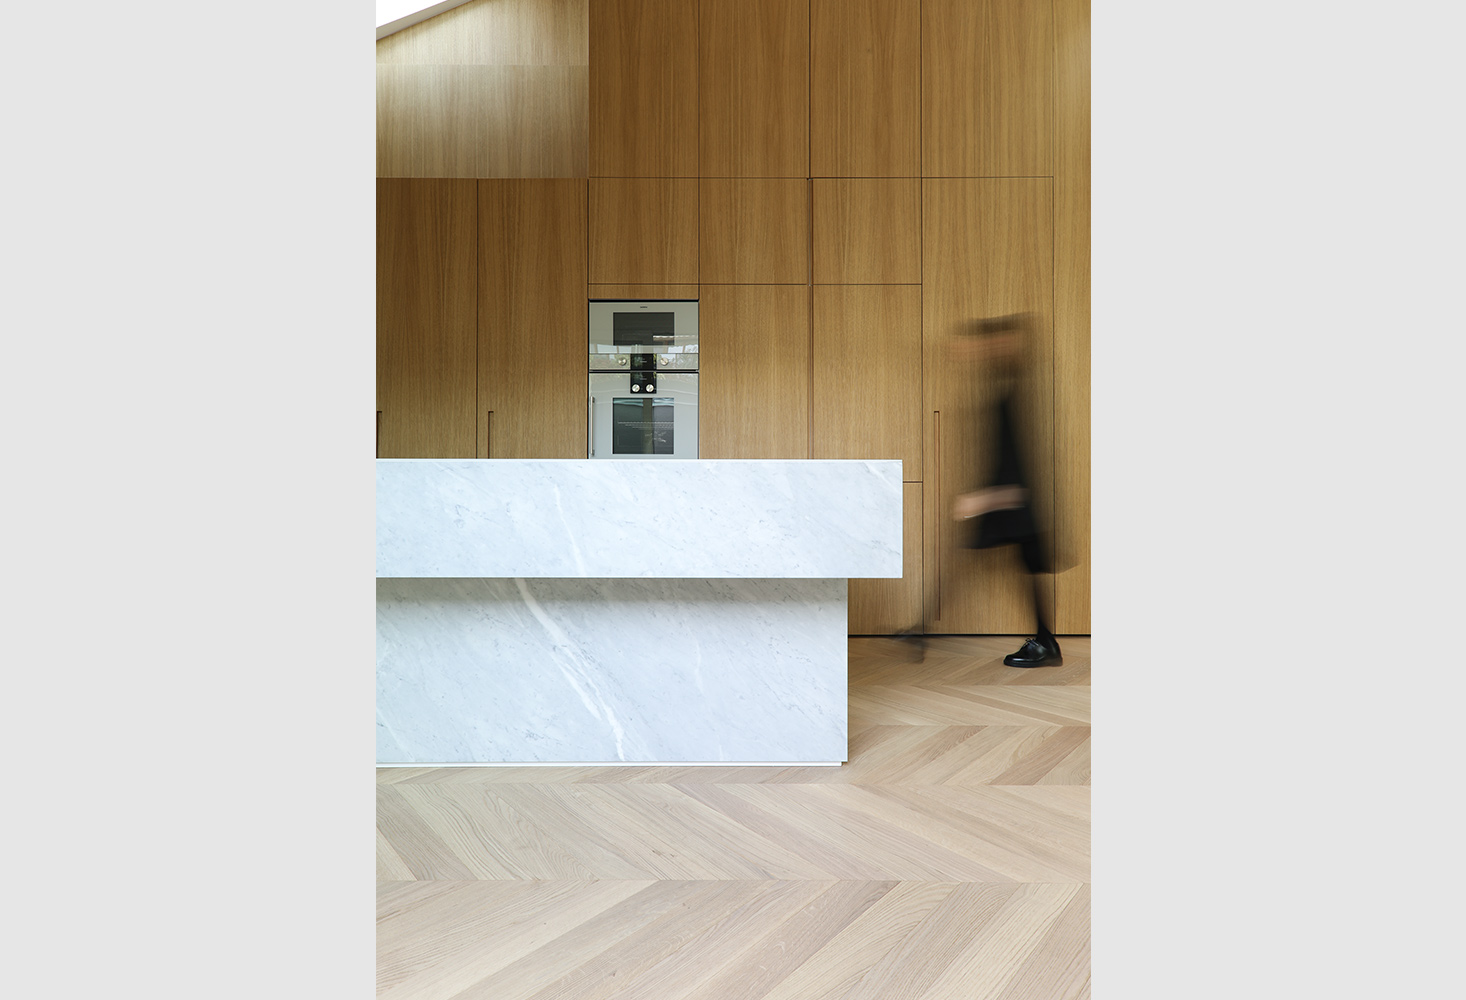 parquet Spina ungherese 45°, European Oak Select, brushed oiled bianco 099